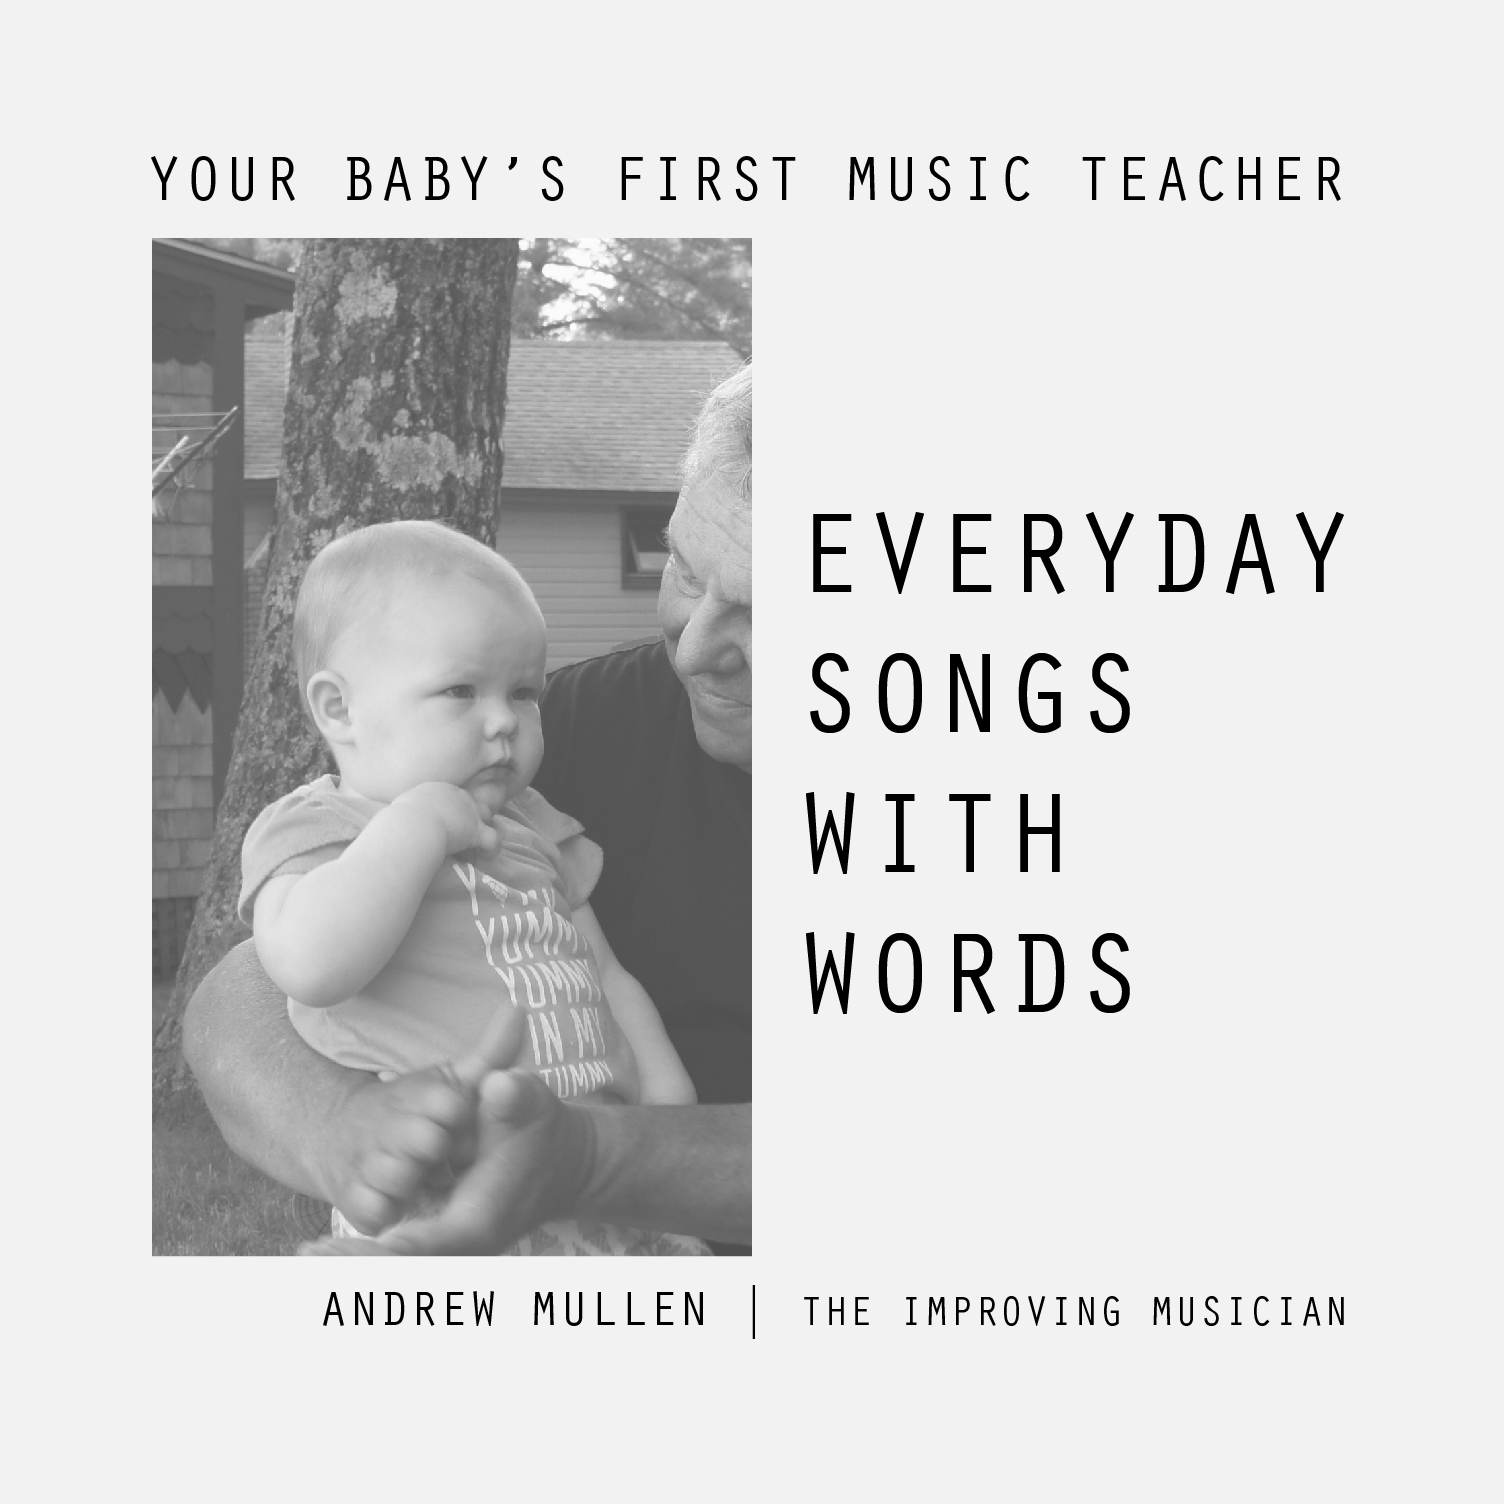 Every Day Songs With Words COVER - zzzEARLY CHILDHOOD MUSIC